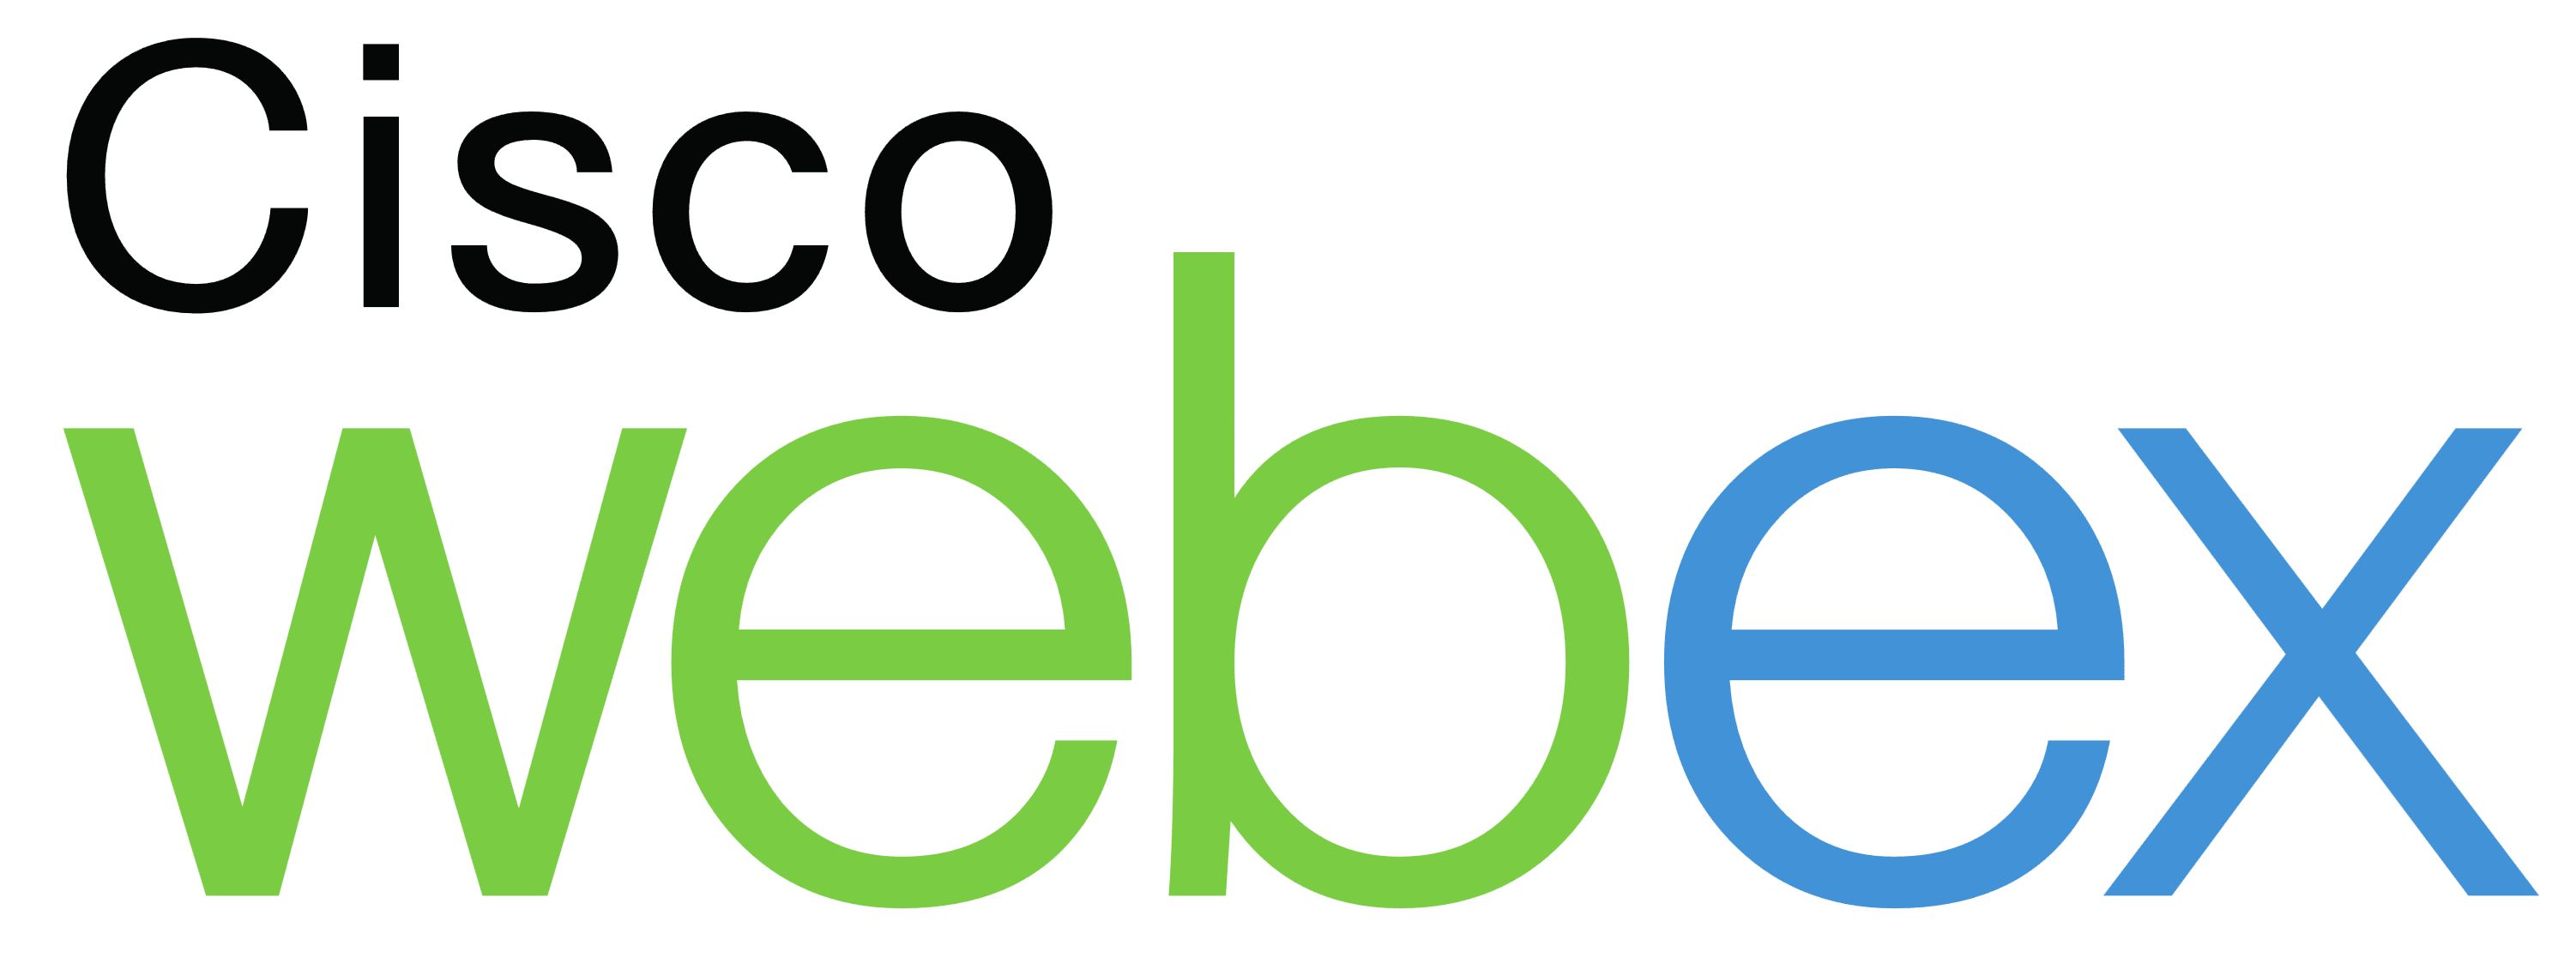 Cisco_Webex_logo_wordmark